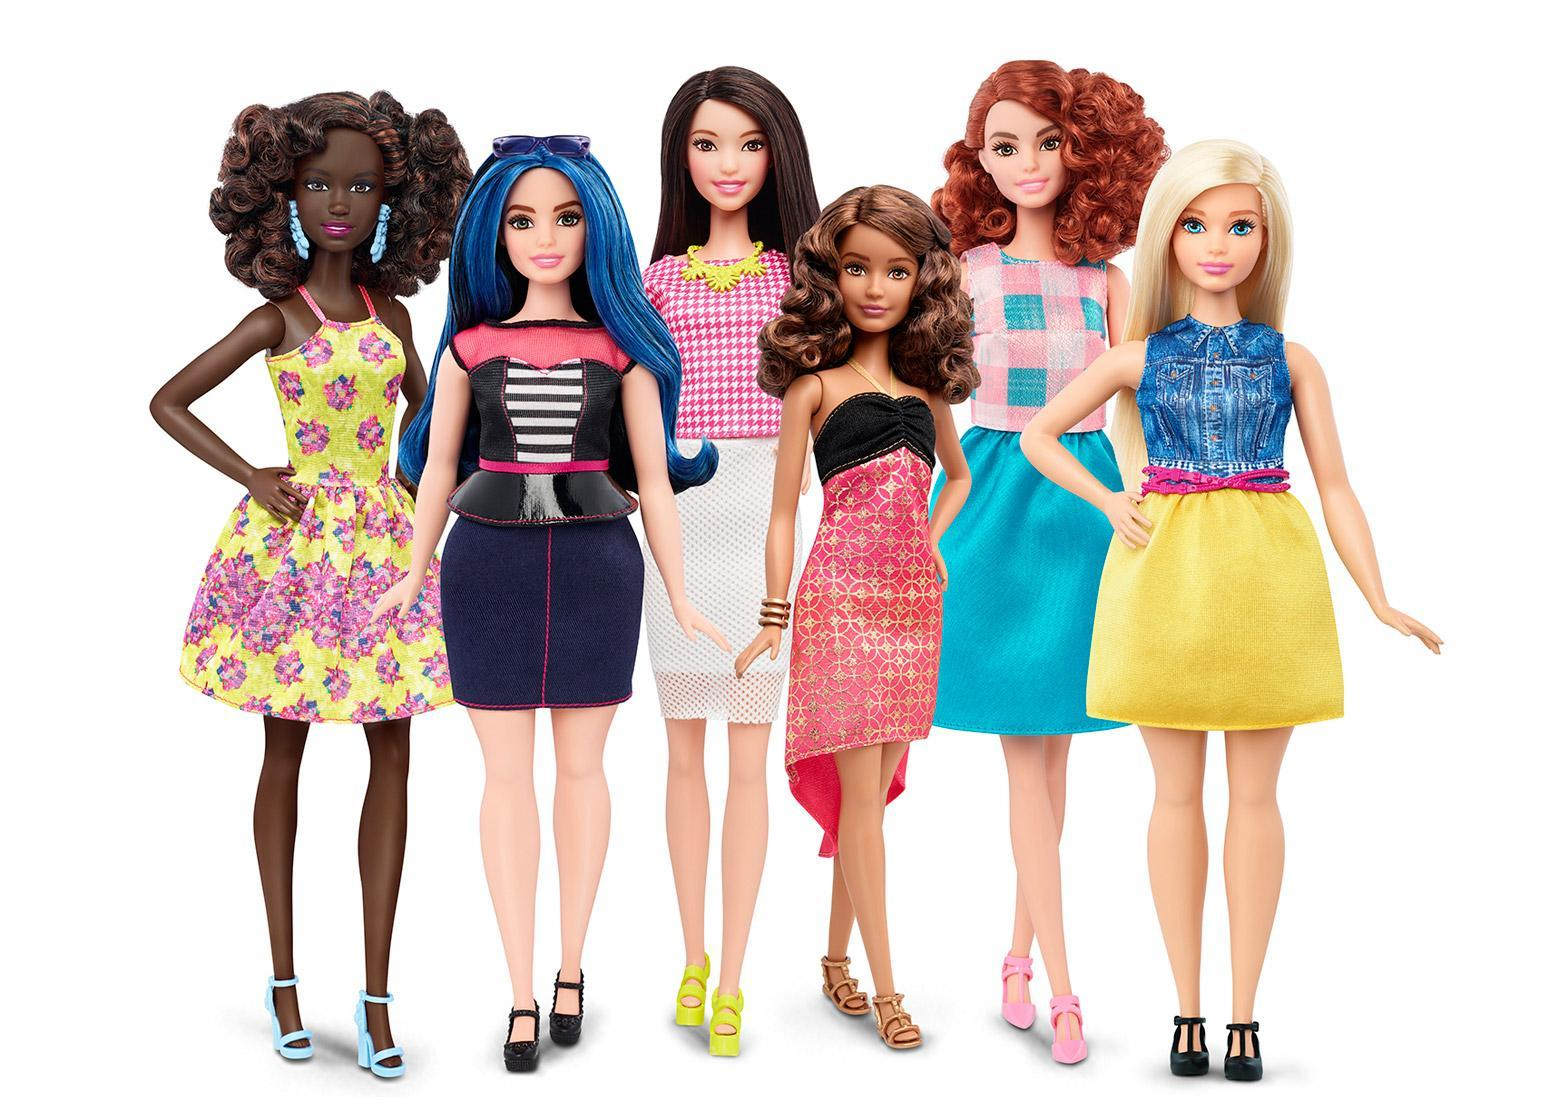 What do you think of the newest Barbie?